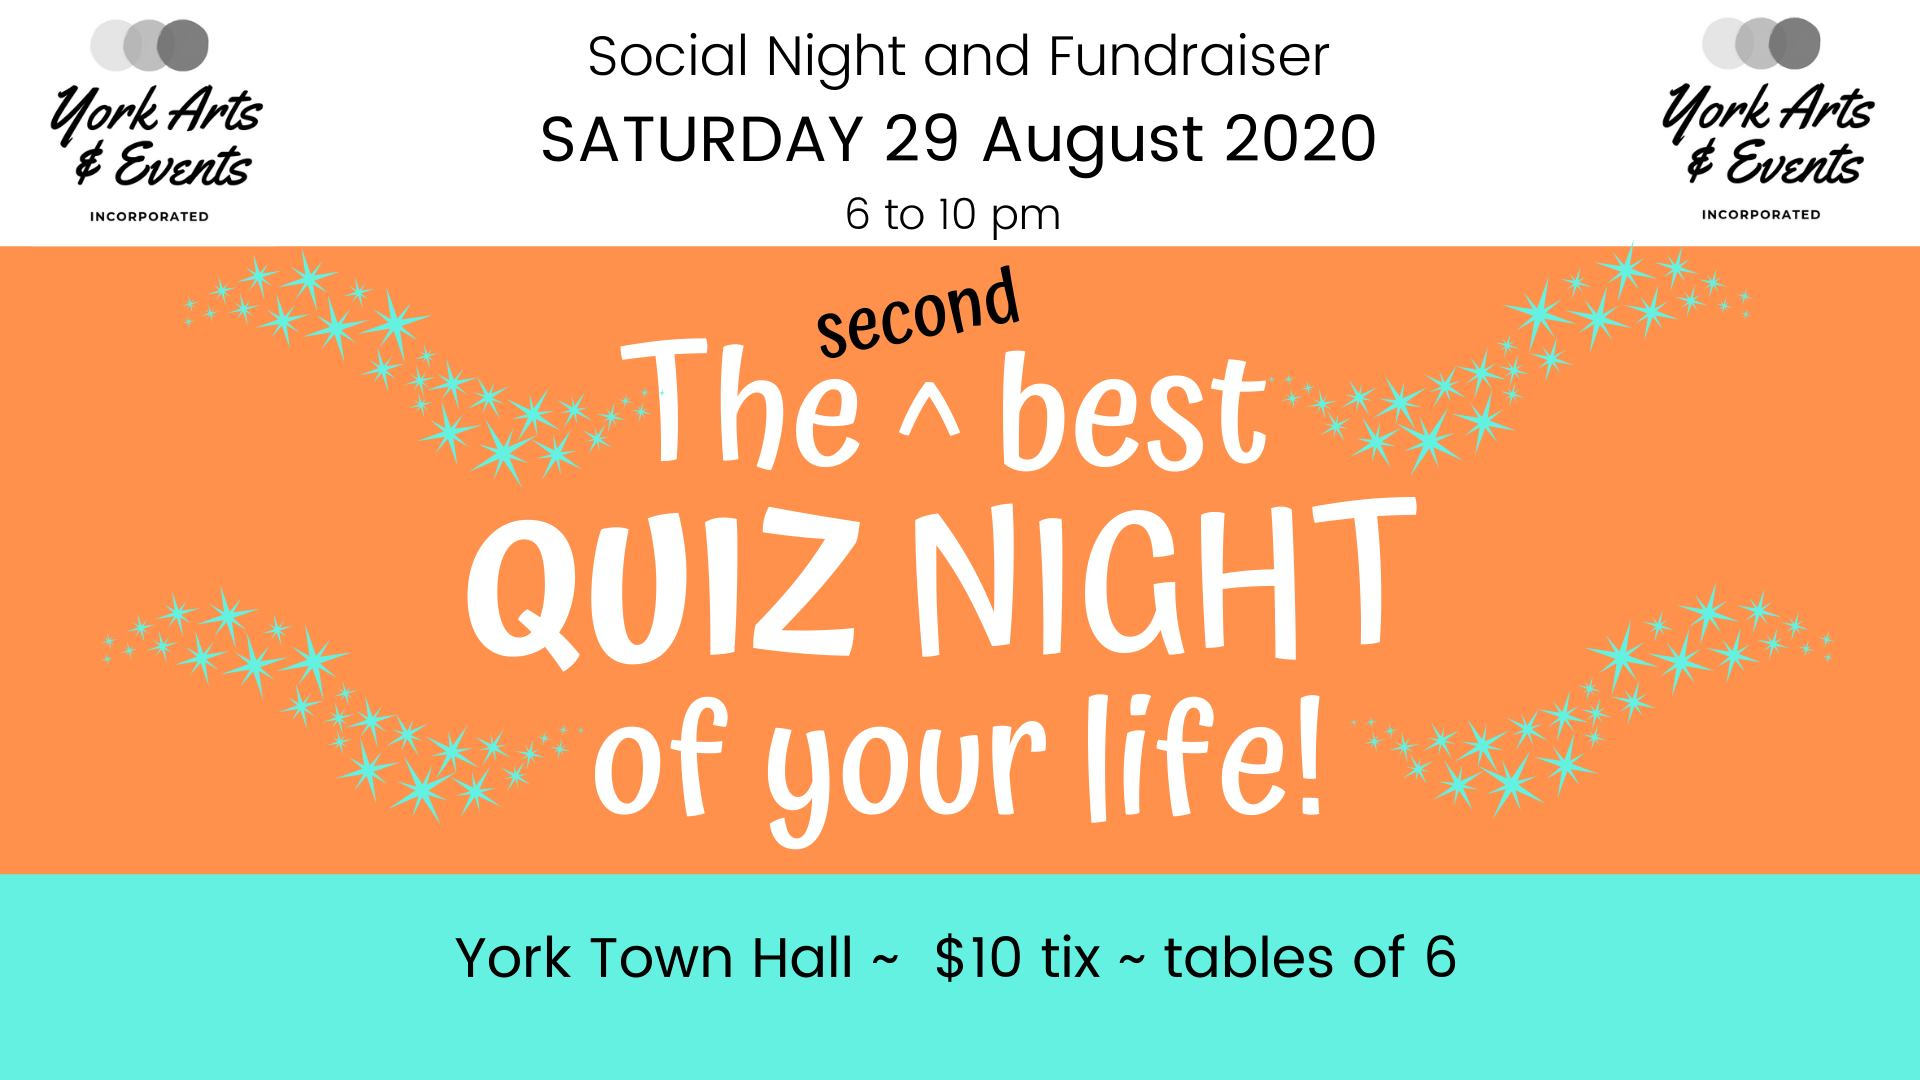 The second best QUIZ NIGHT of your life!